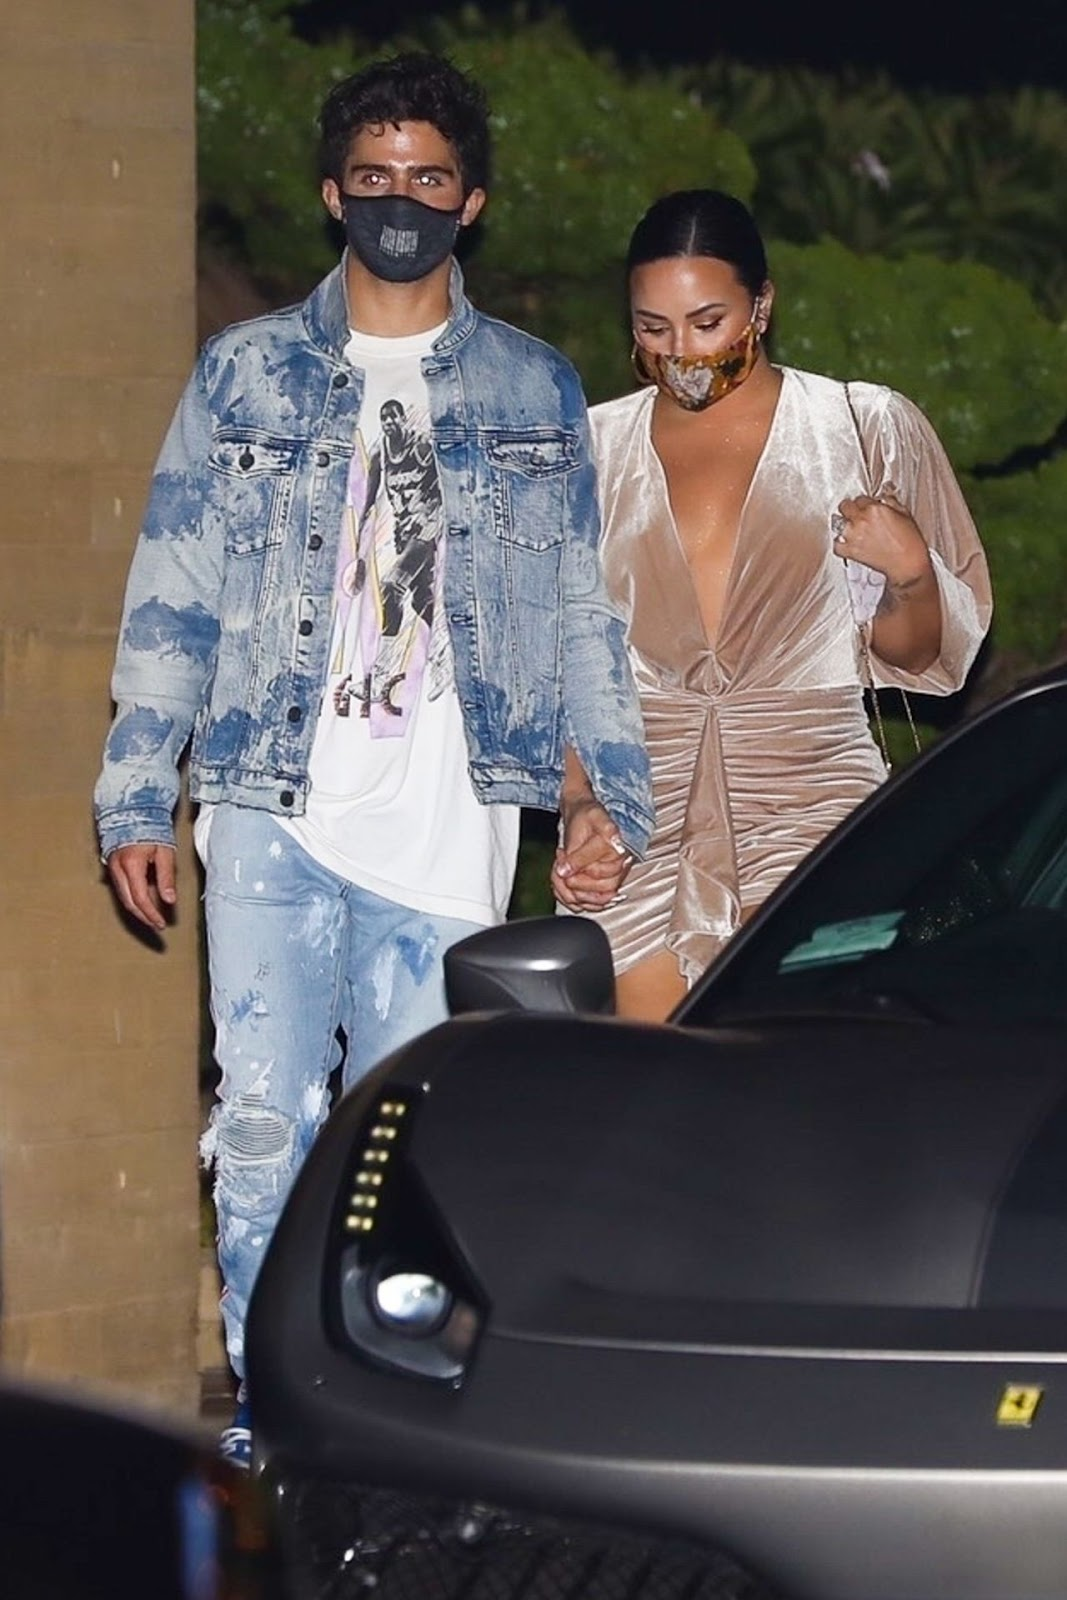 Demi Lovato Enjoys Romantic Malibu Date Night with Fiancé Max Ehrich Following Engagement